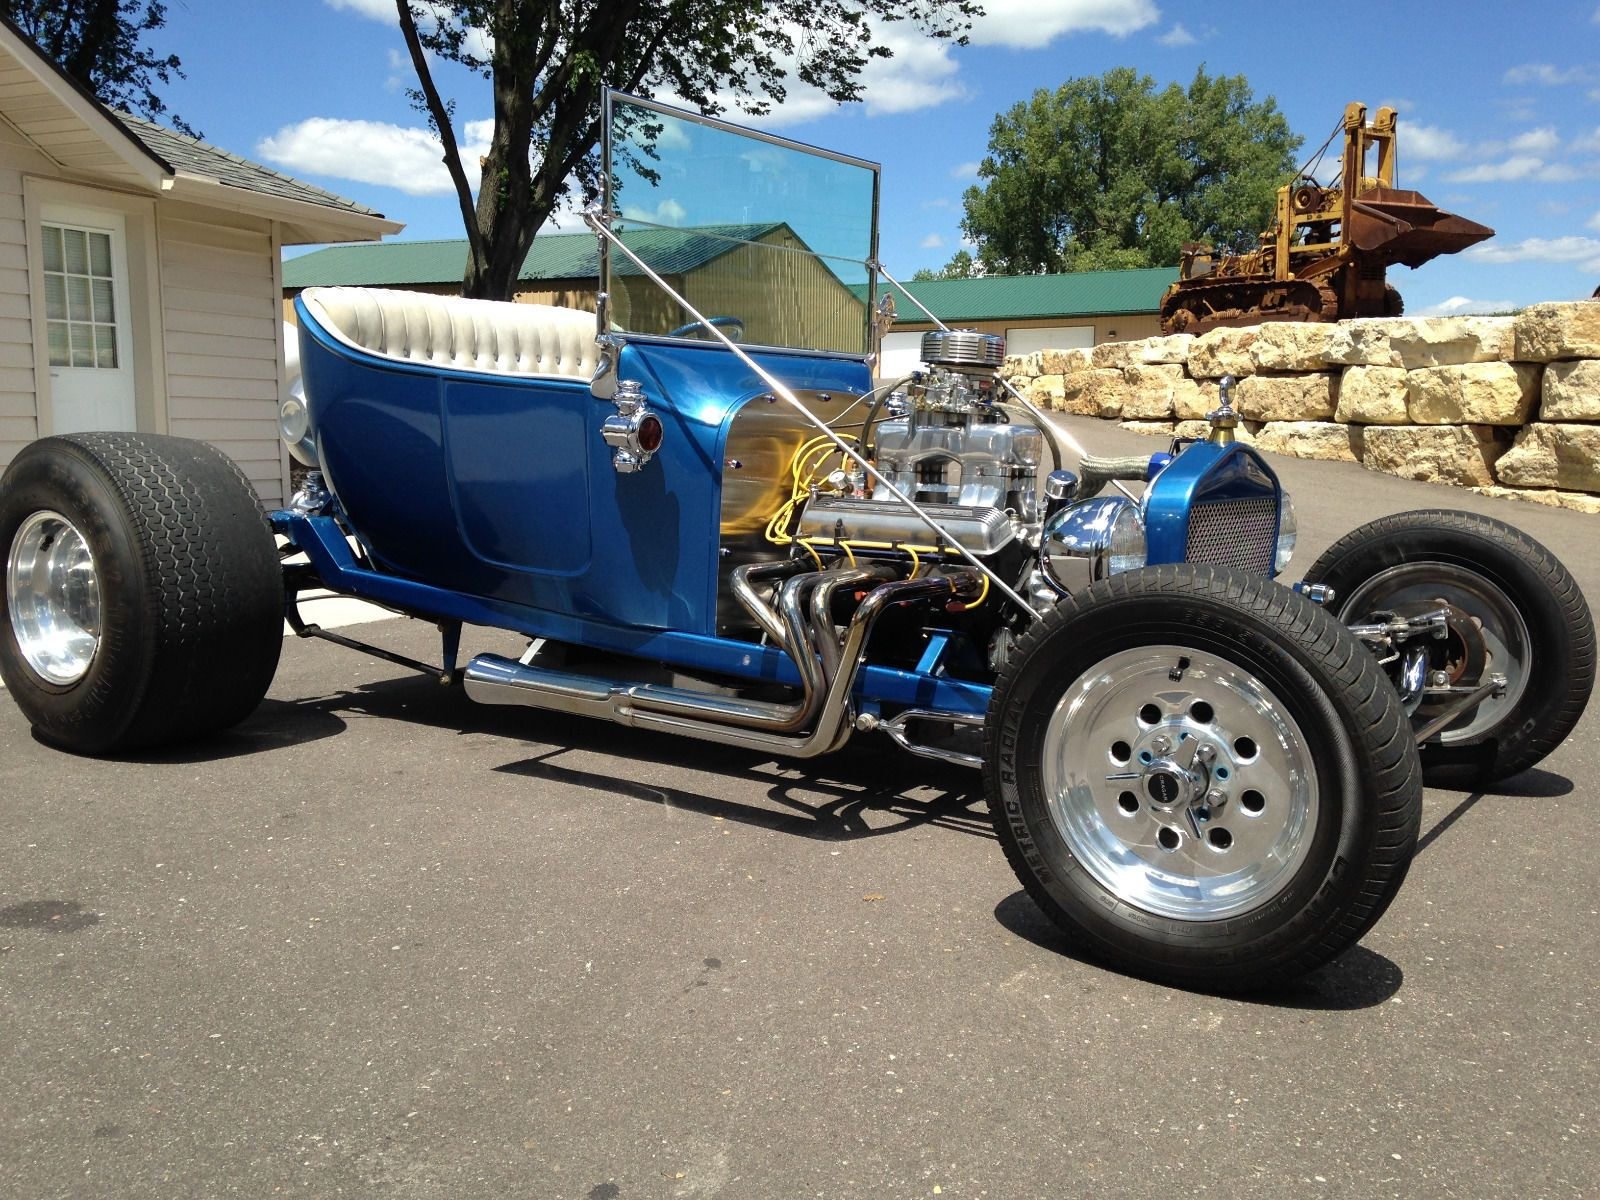 1932 Ford High-Boy Roadster | *CRUIZING* | Pinterest | 1932 ford ...